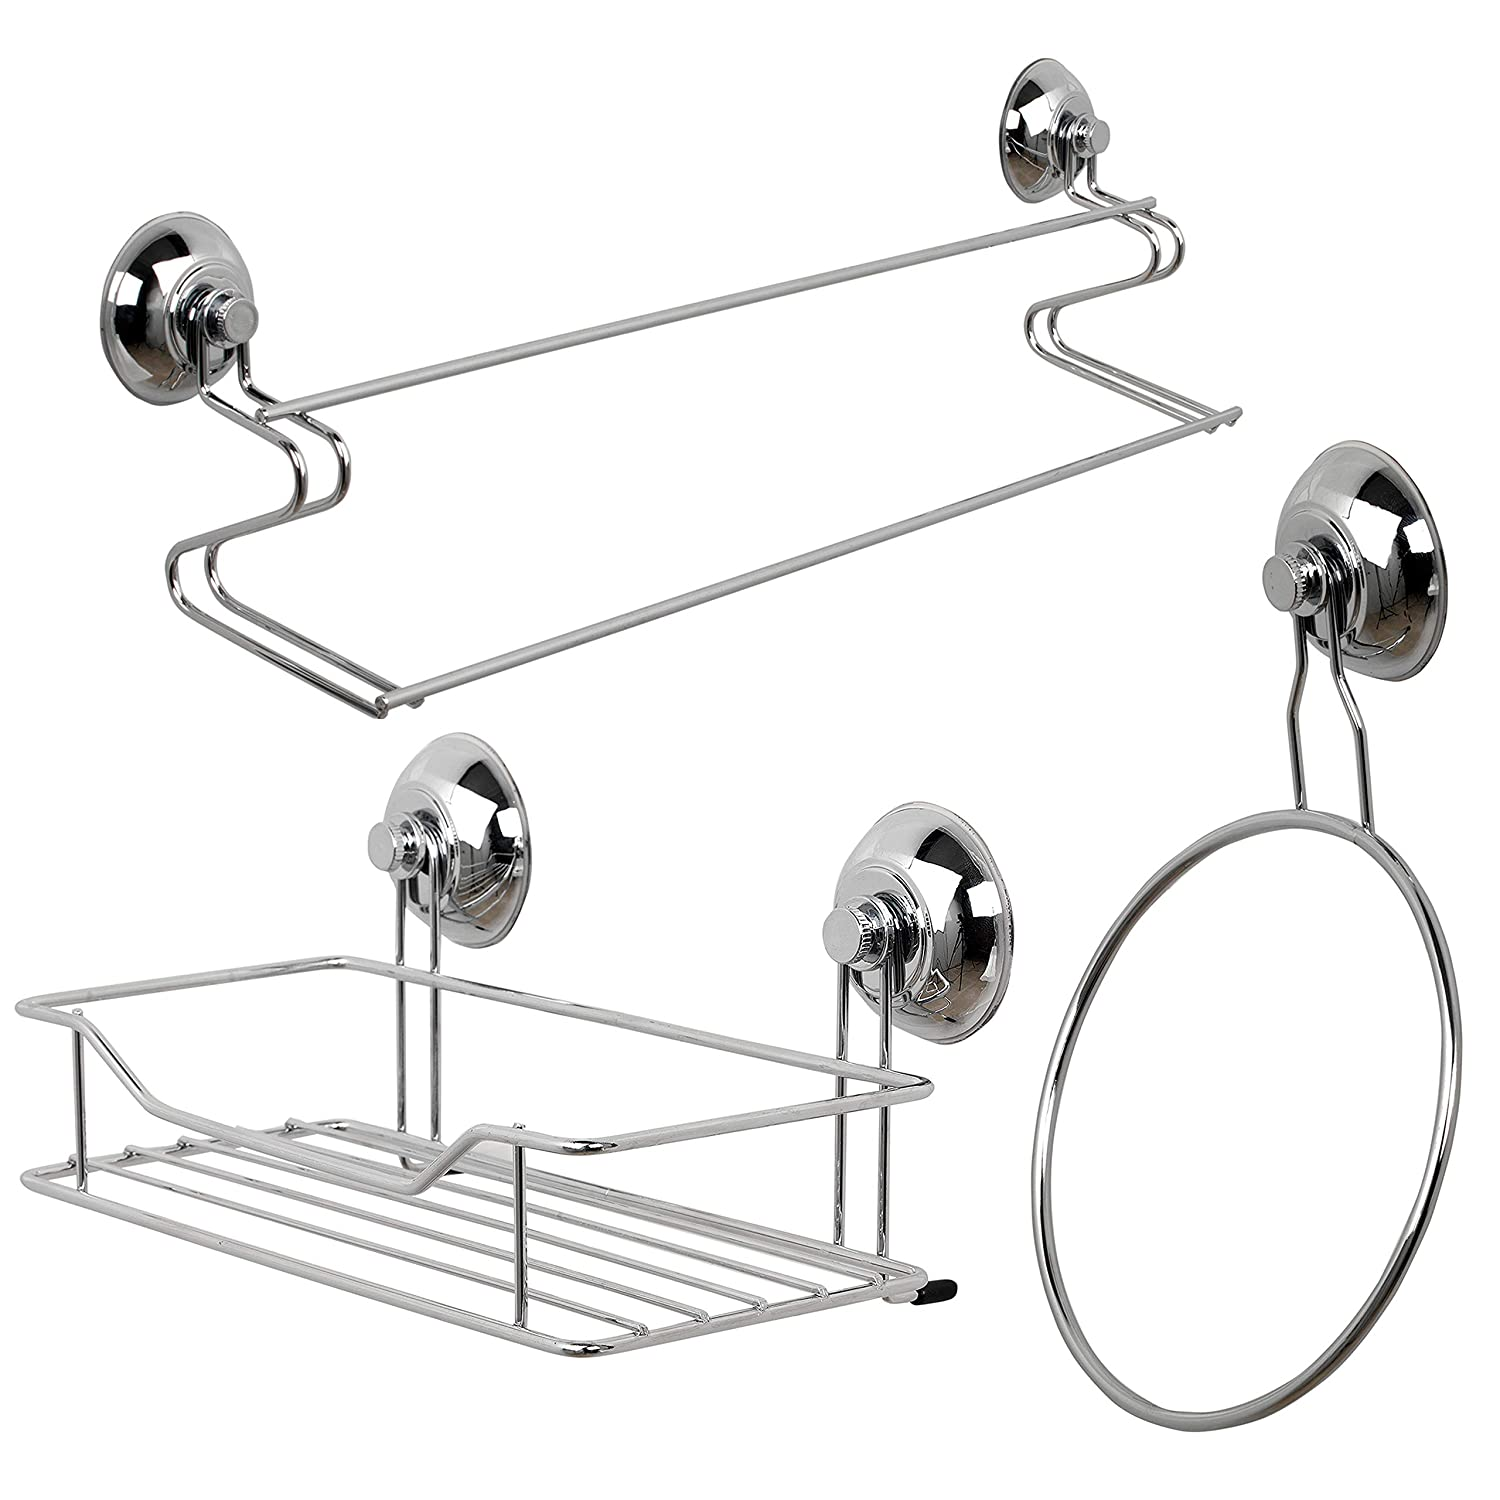 Beldray COMBO-1723 1-Tier & 2-Tier Corner Suction Shower Baskets, Chrome